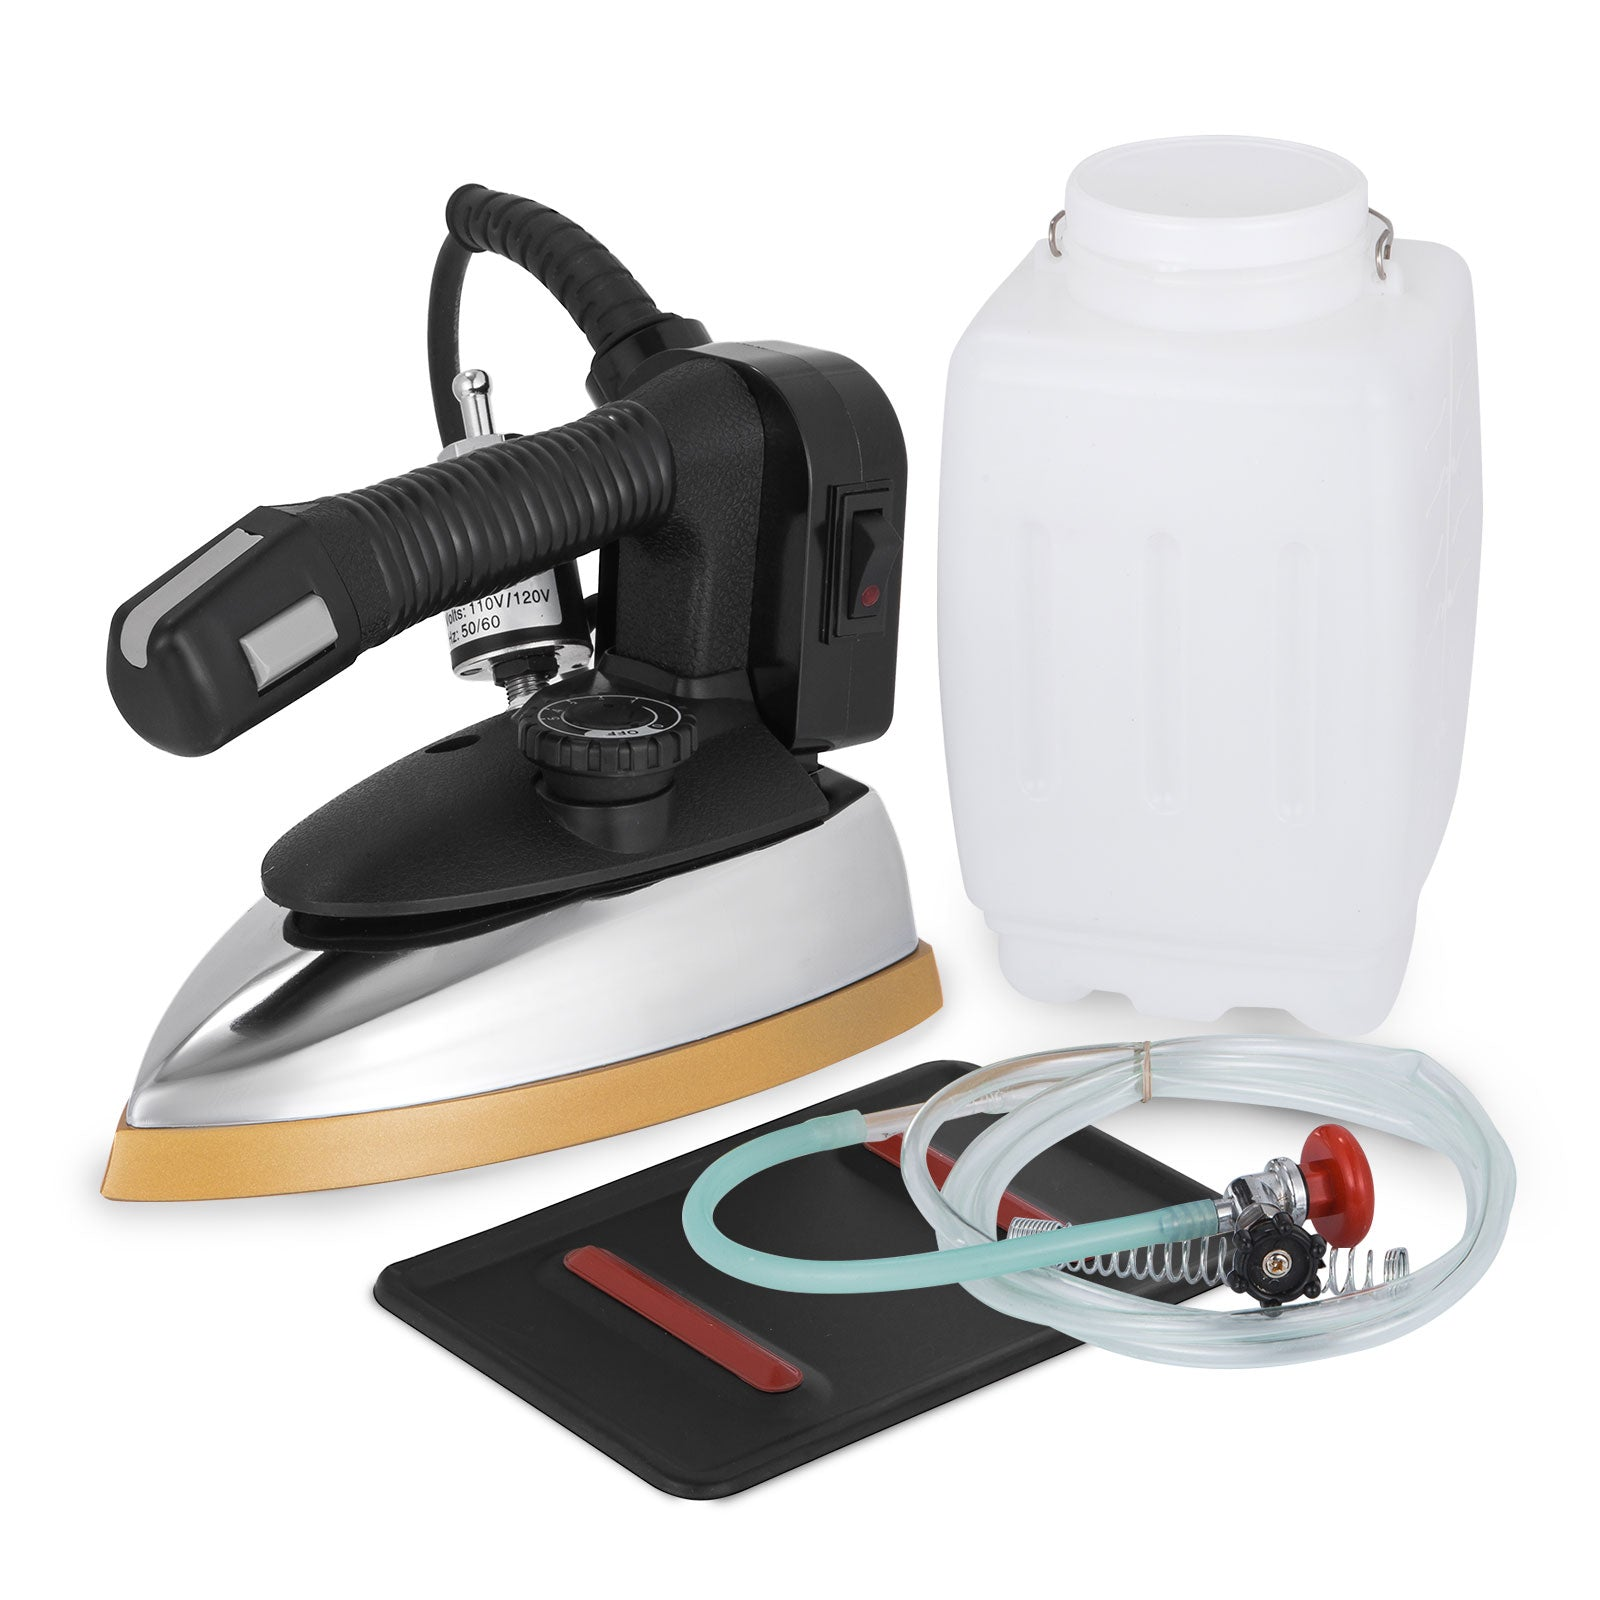 Gravity Feed Steam Iron Model Teflon Shoe & Filter Teflon Shoe And Demineralizer